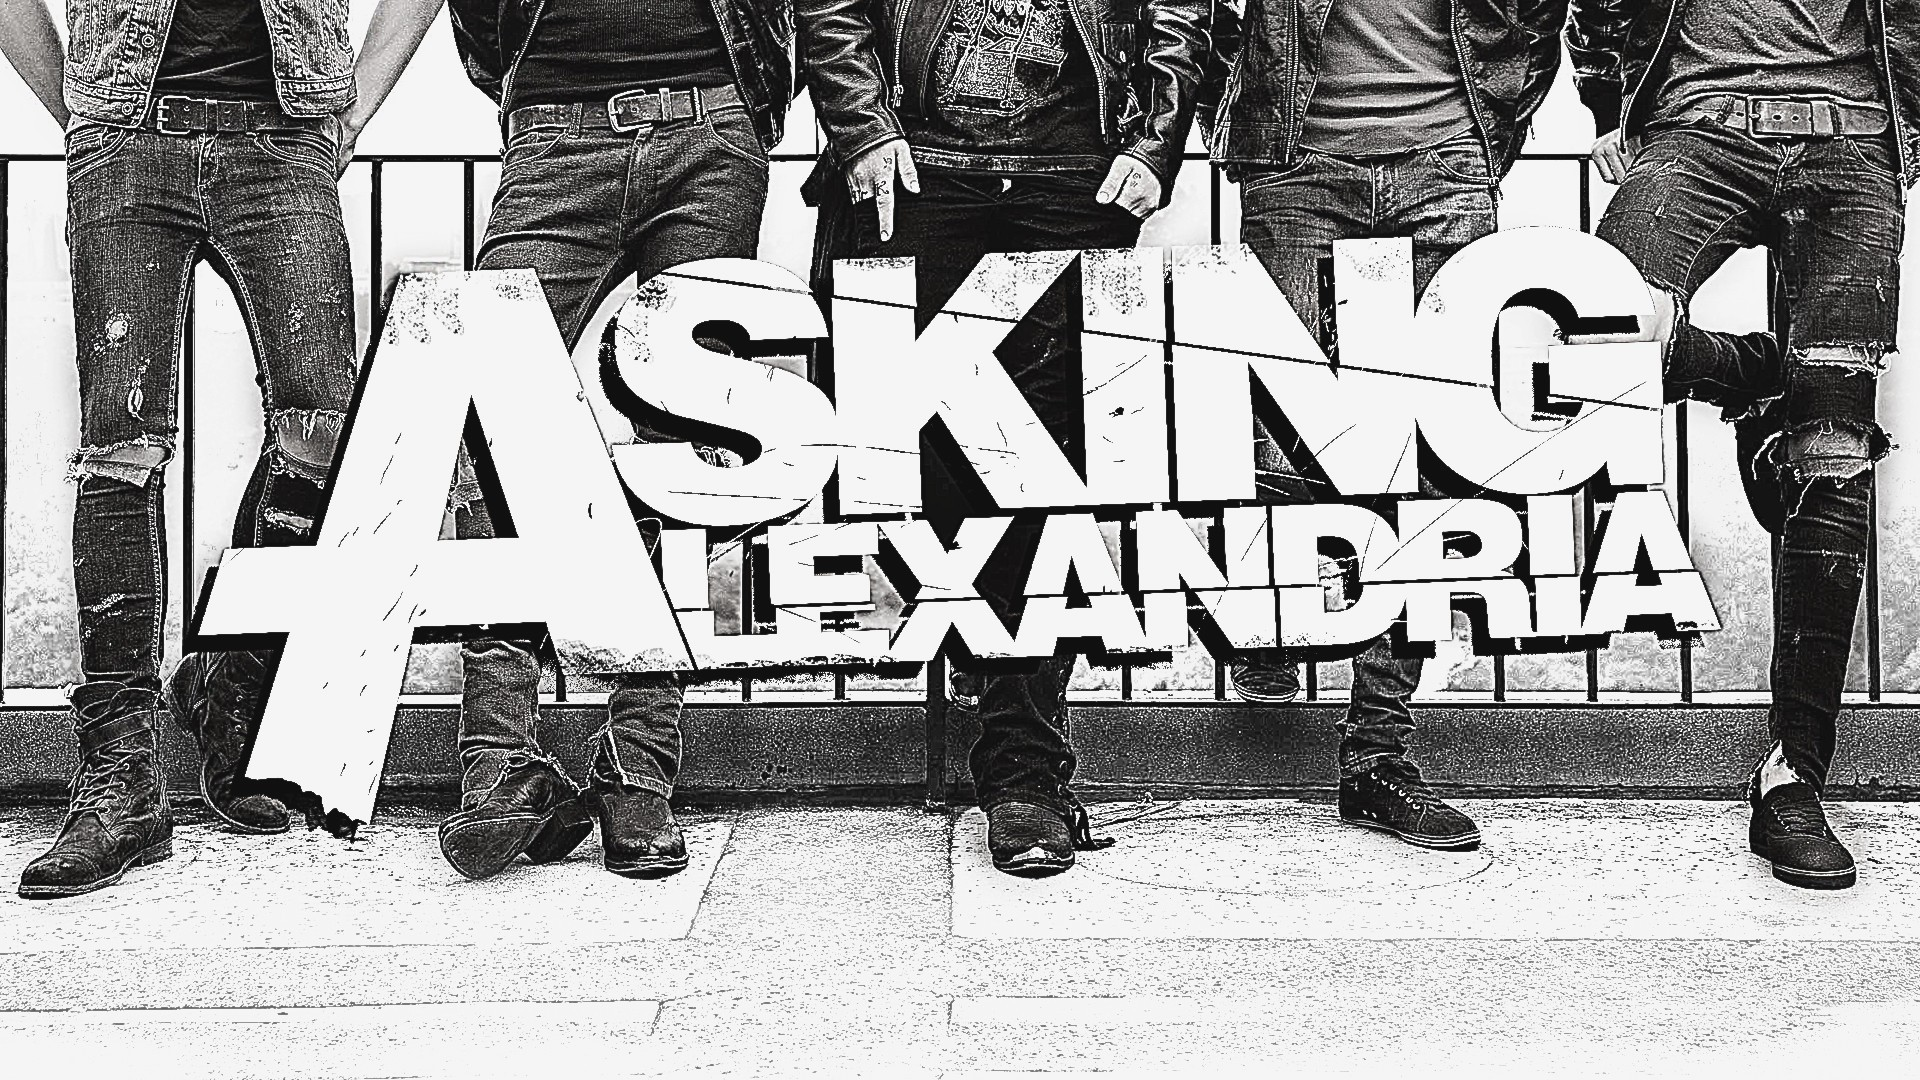 1920x1080 Asking Alexandria High Definition